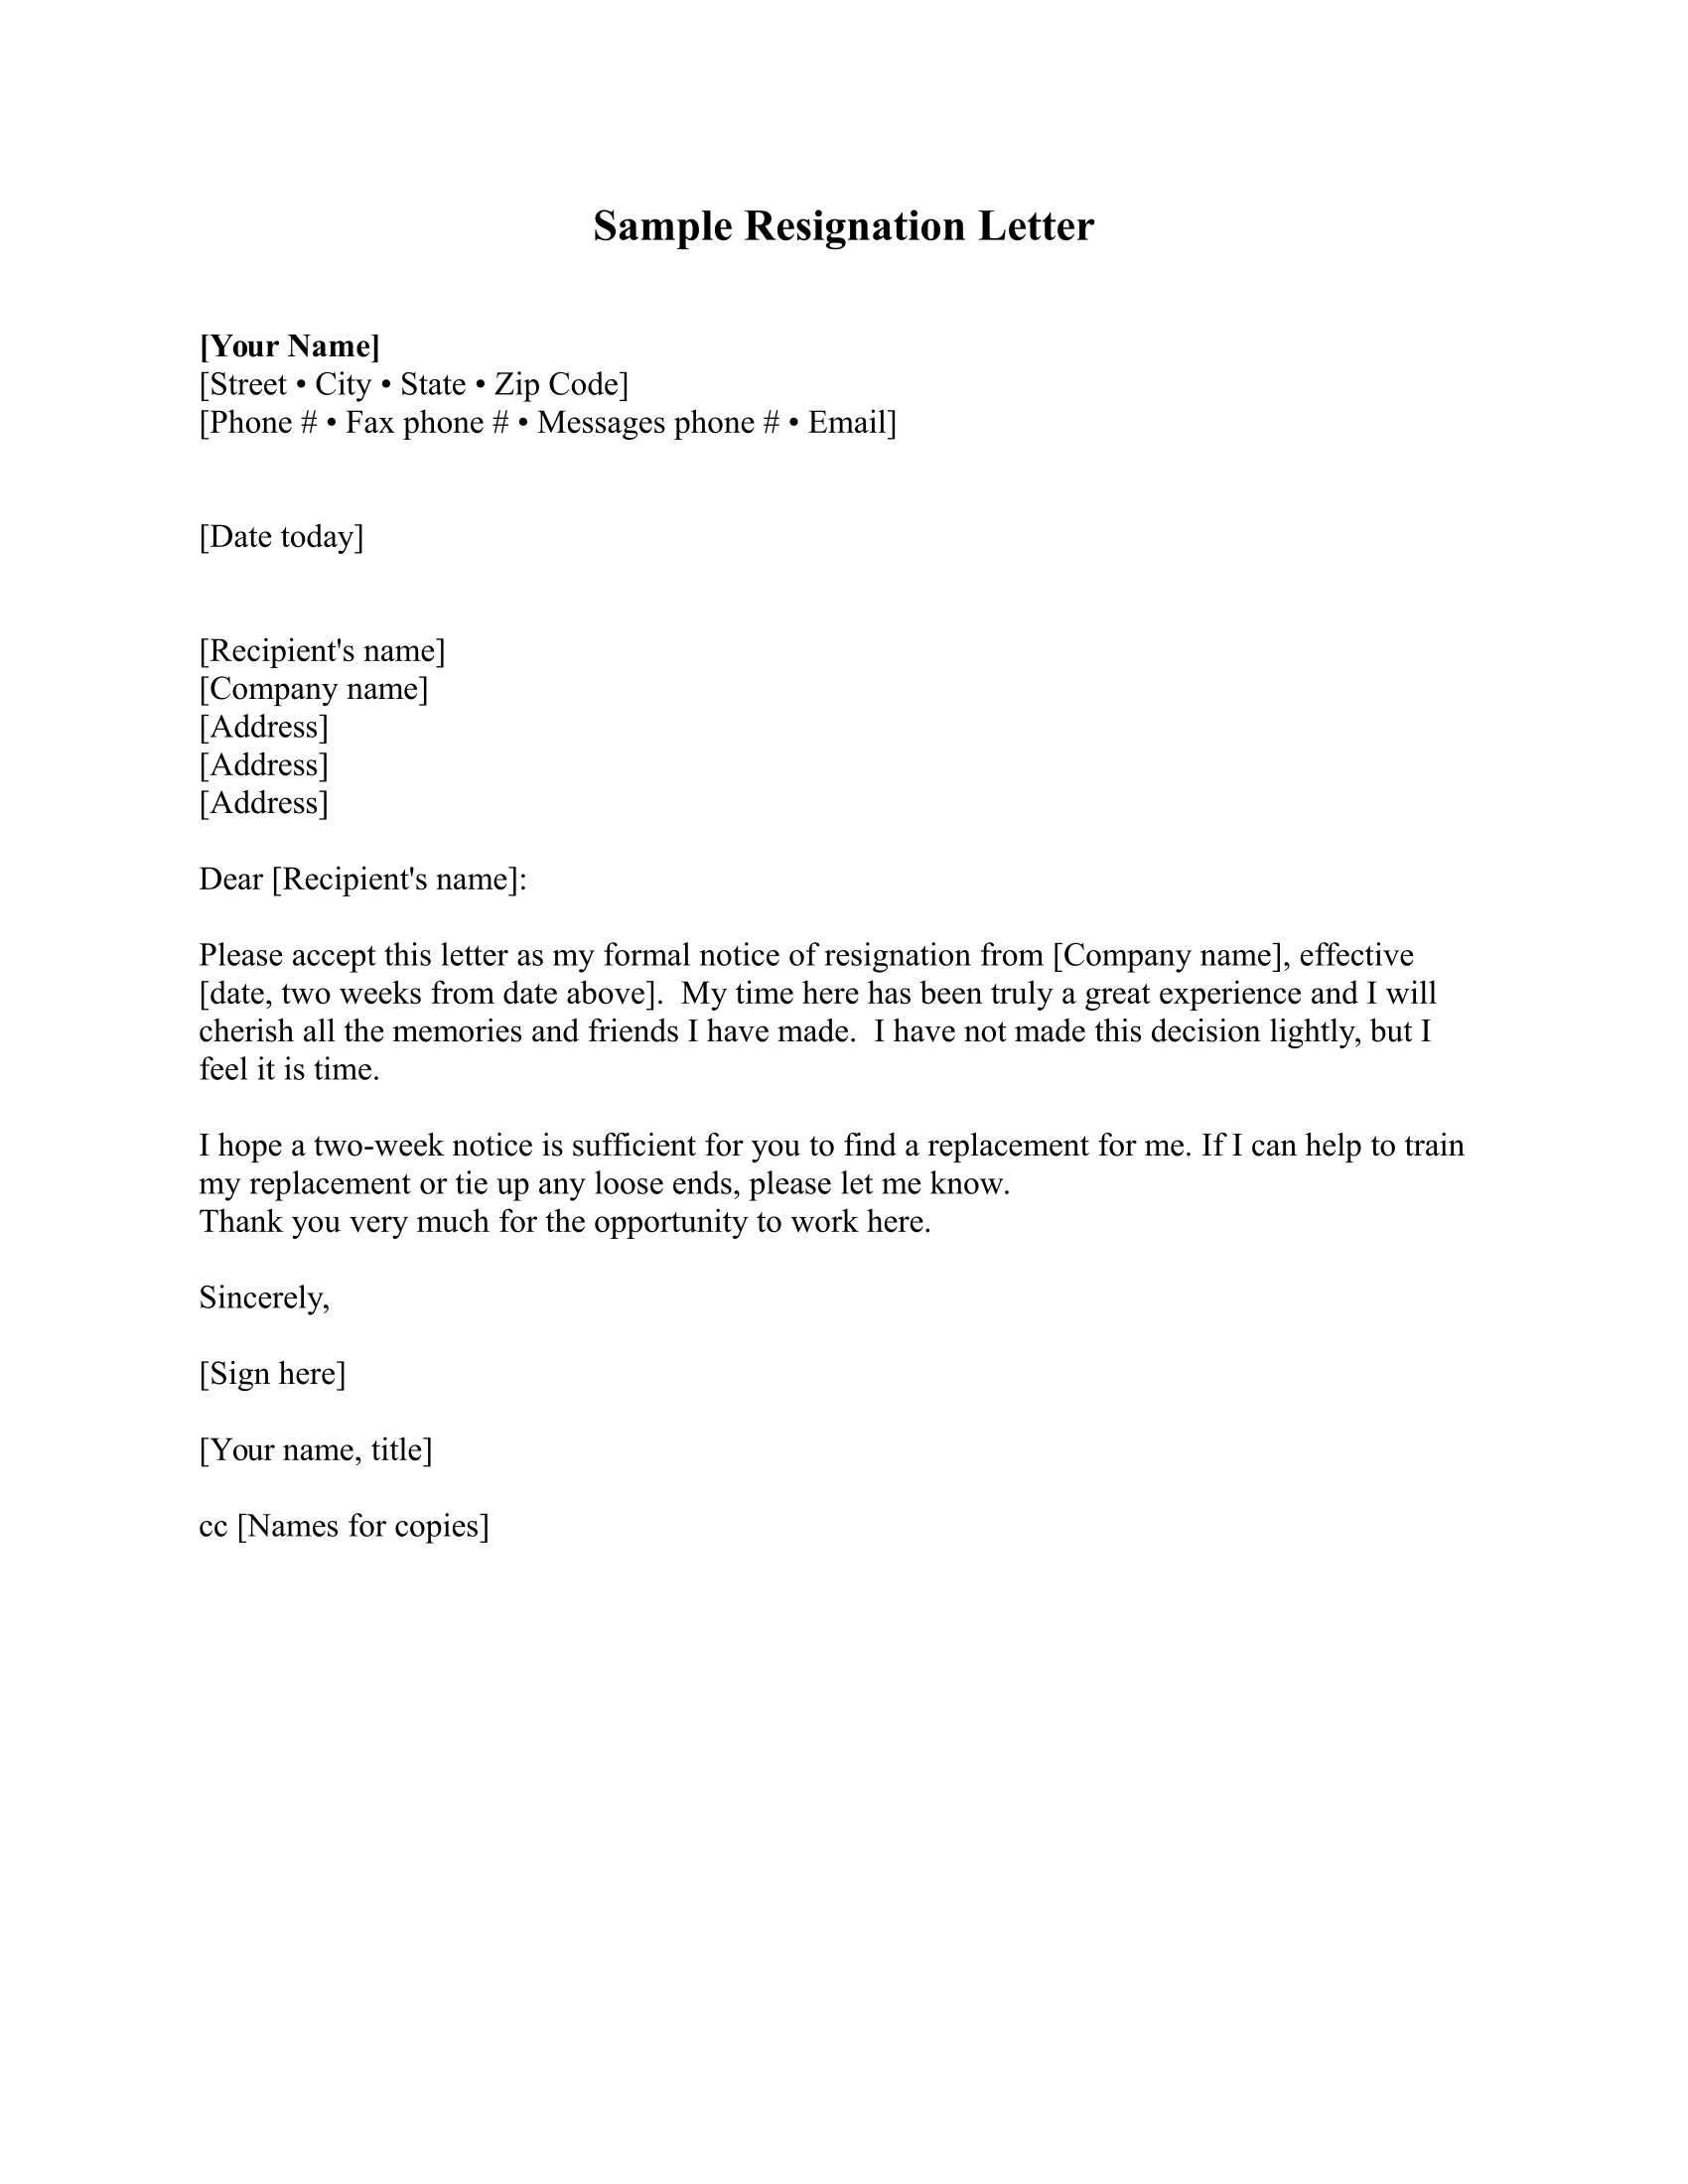 how to write a resignation letter free download template